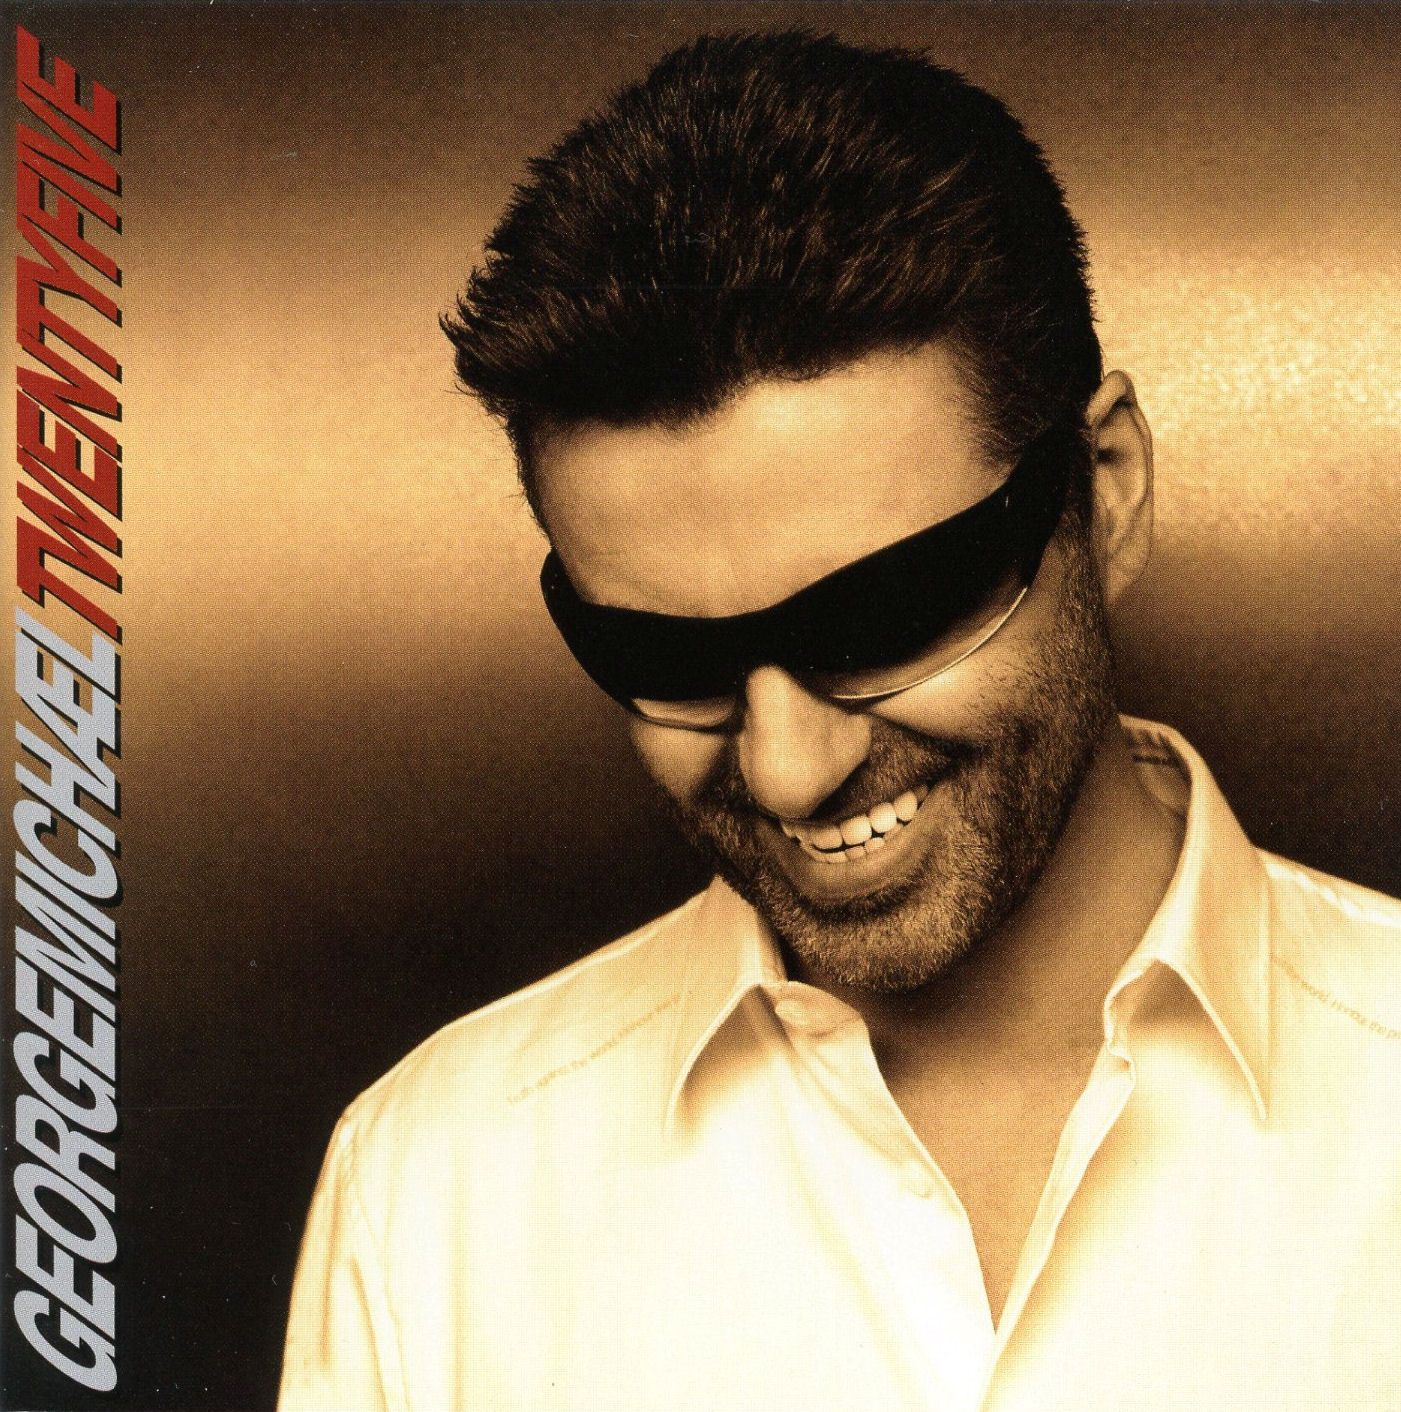 George Michael - Twentyfive album cover